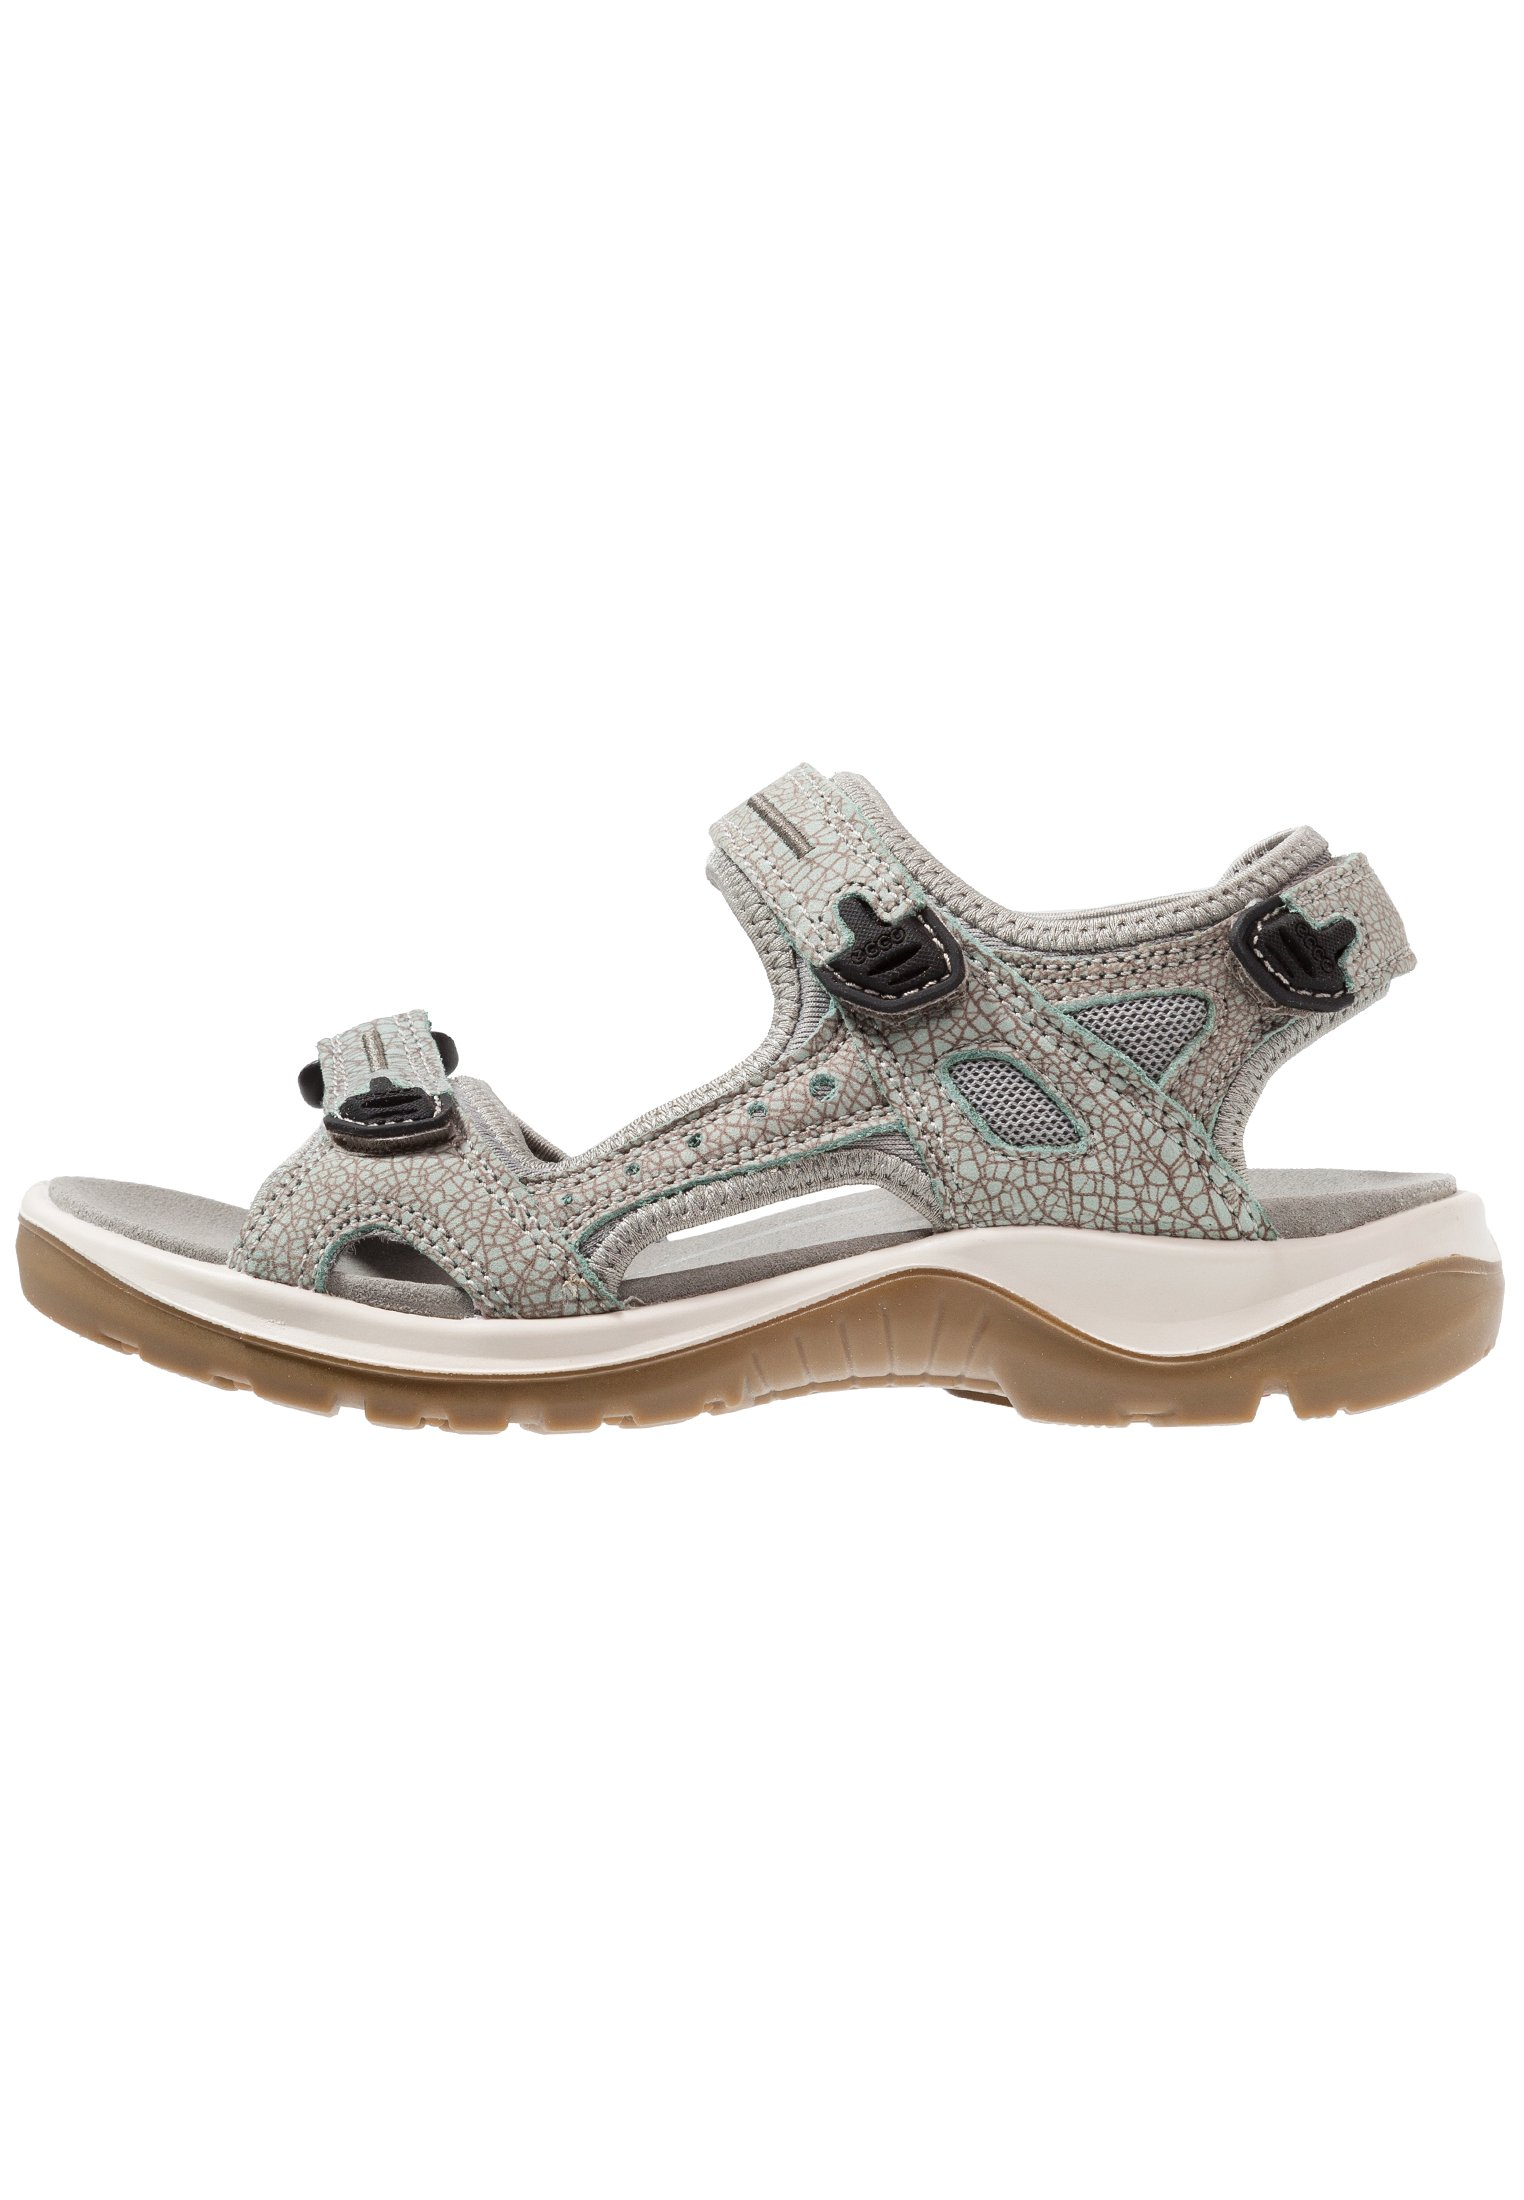 ecco OFFROAD Outdoorsandalen ice flowercocoa brown